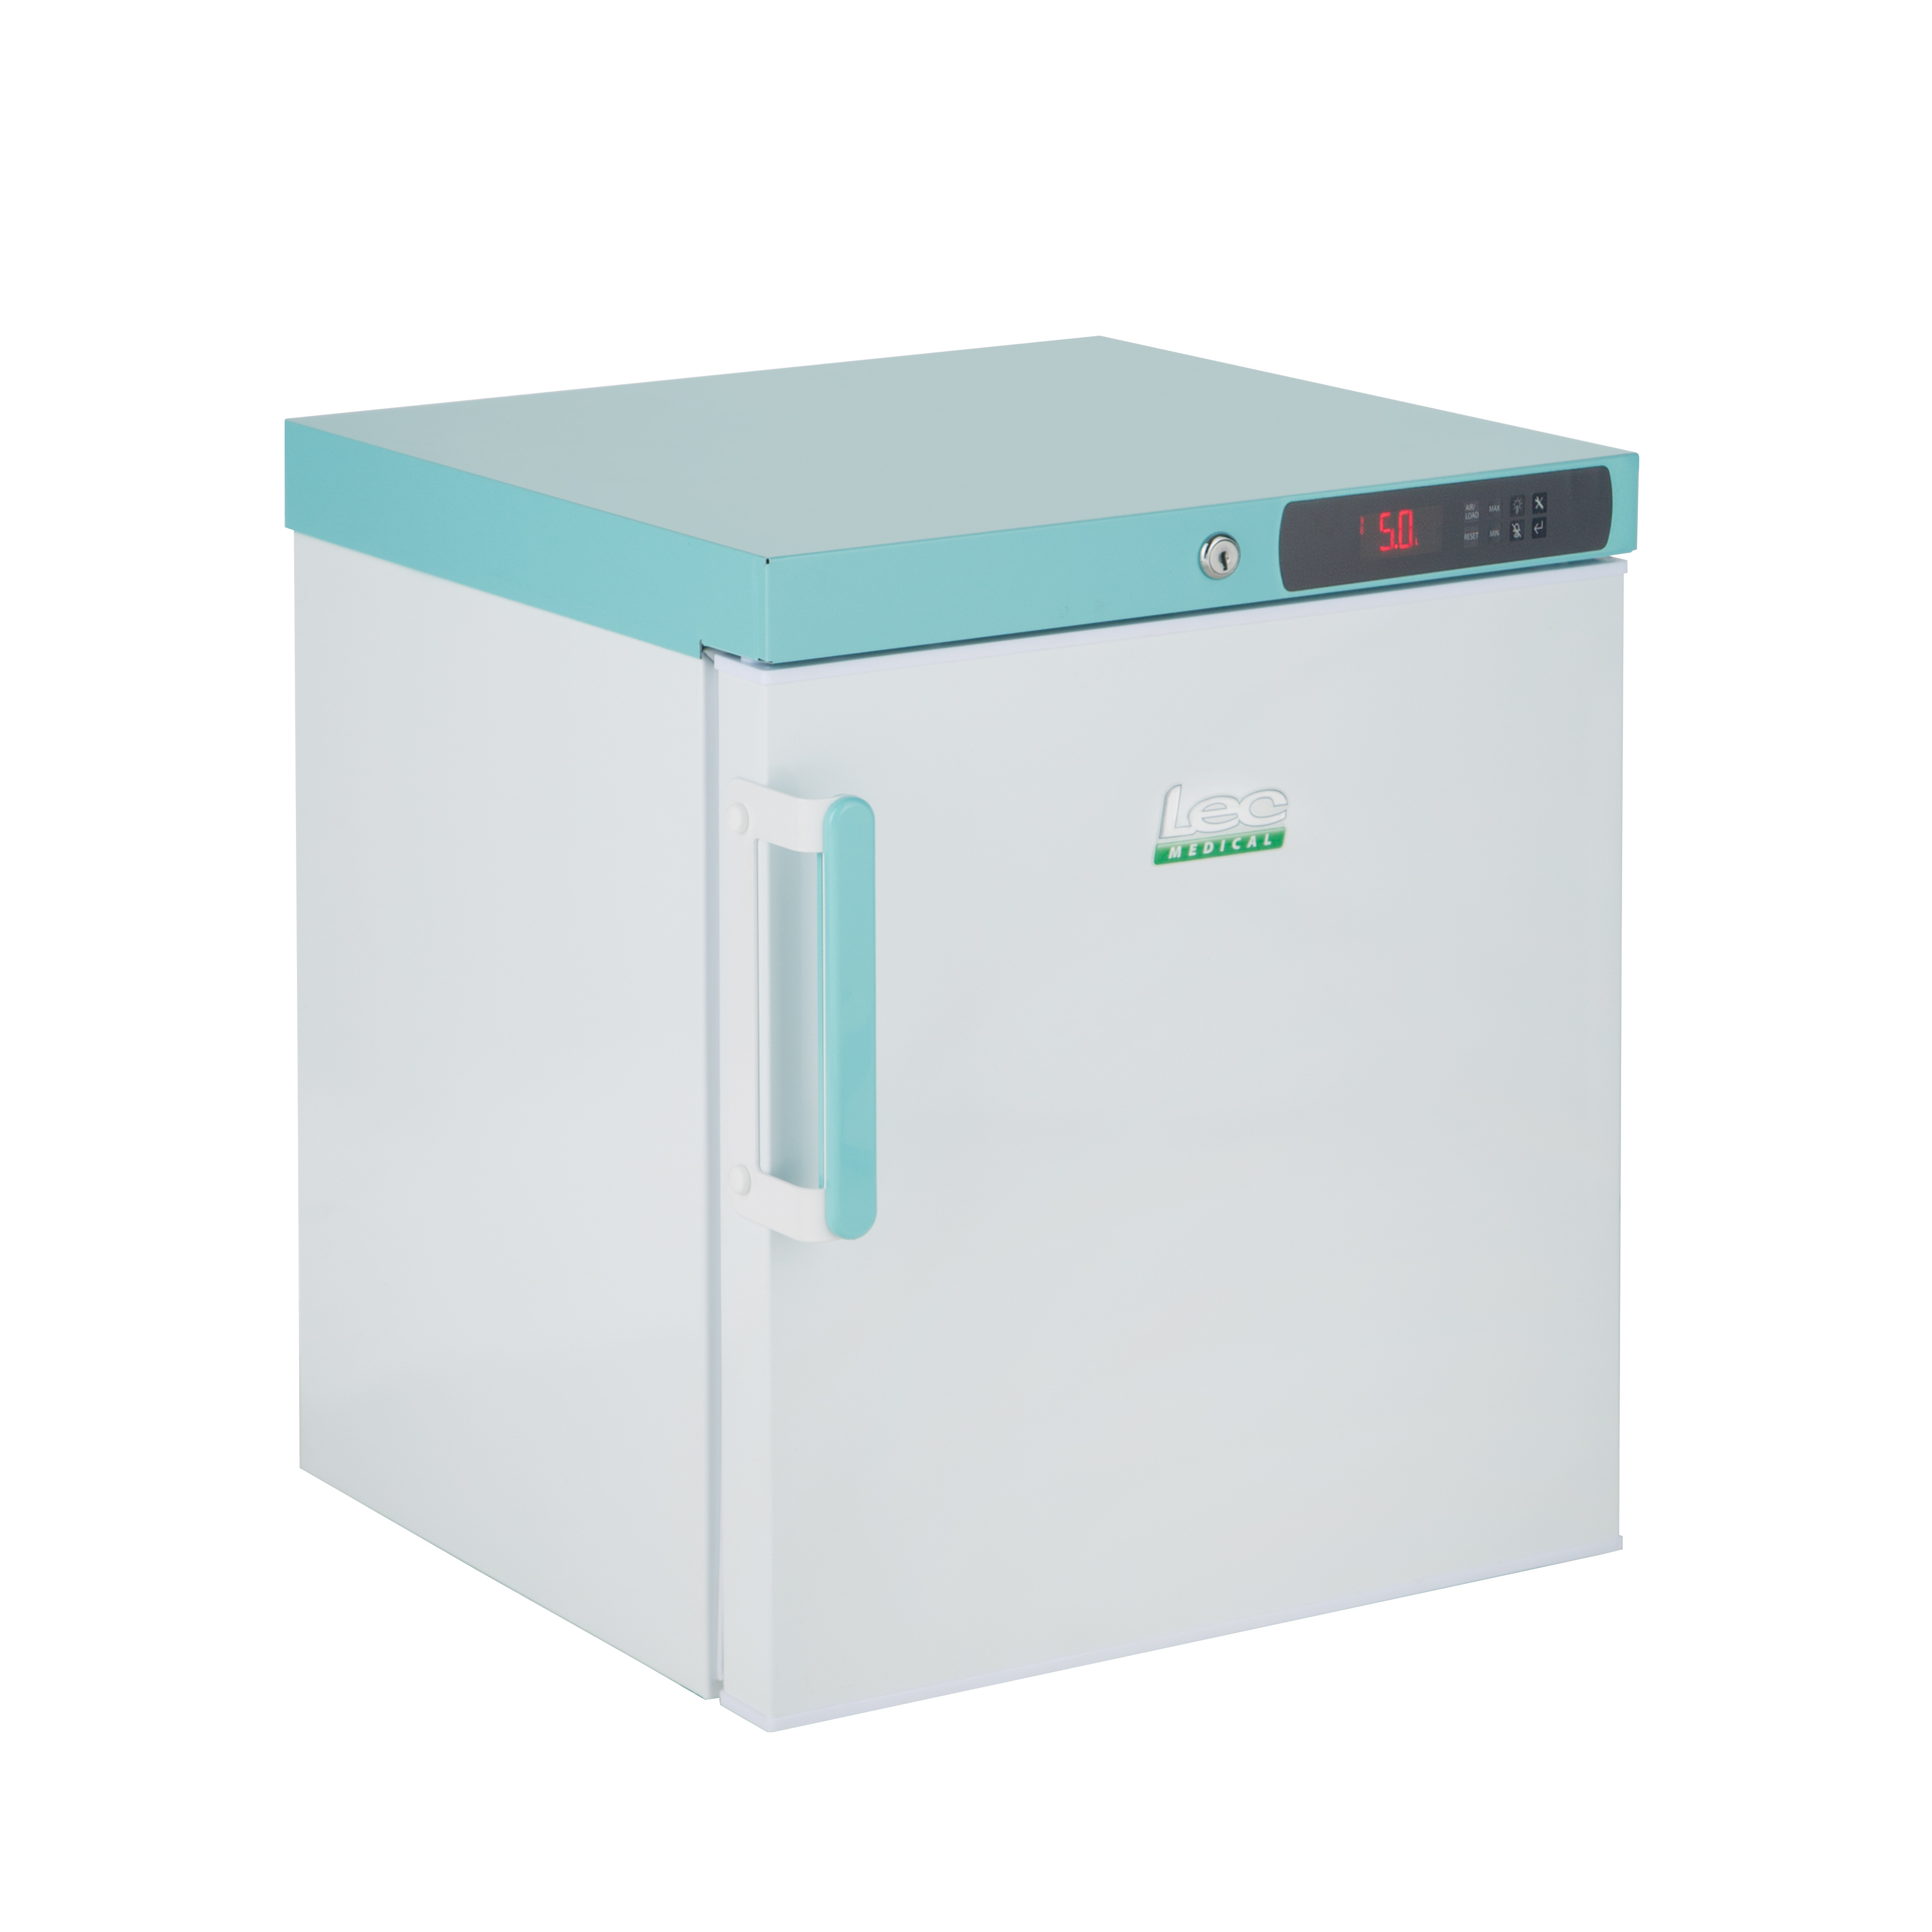 Lec PPSR47UK Pharmacy Refrigerator with Solid Door (47 Litres) (5 Year Warranty)   Medical Supermarket